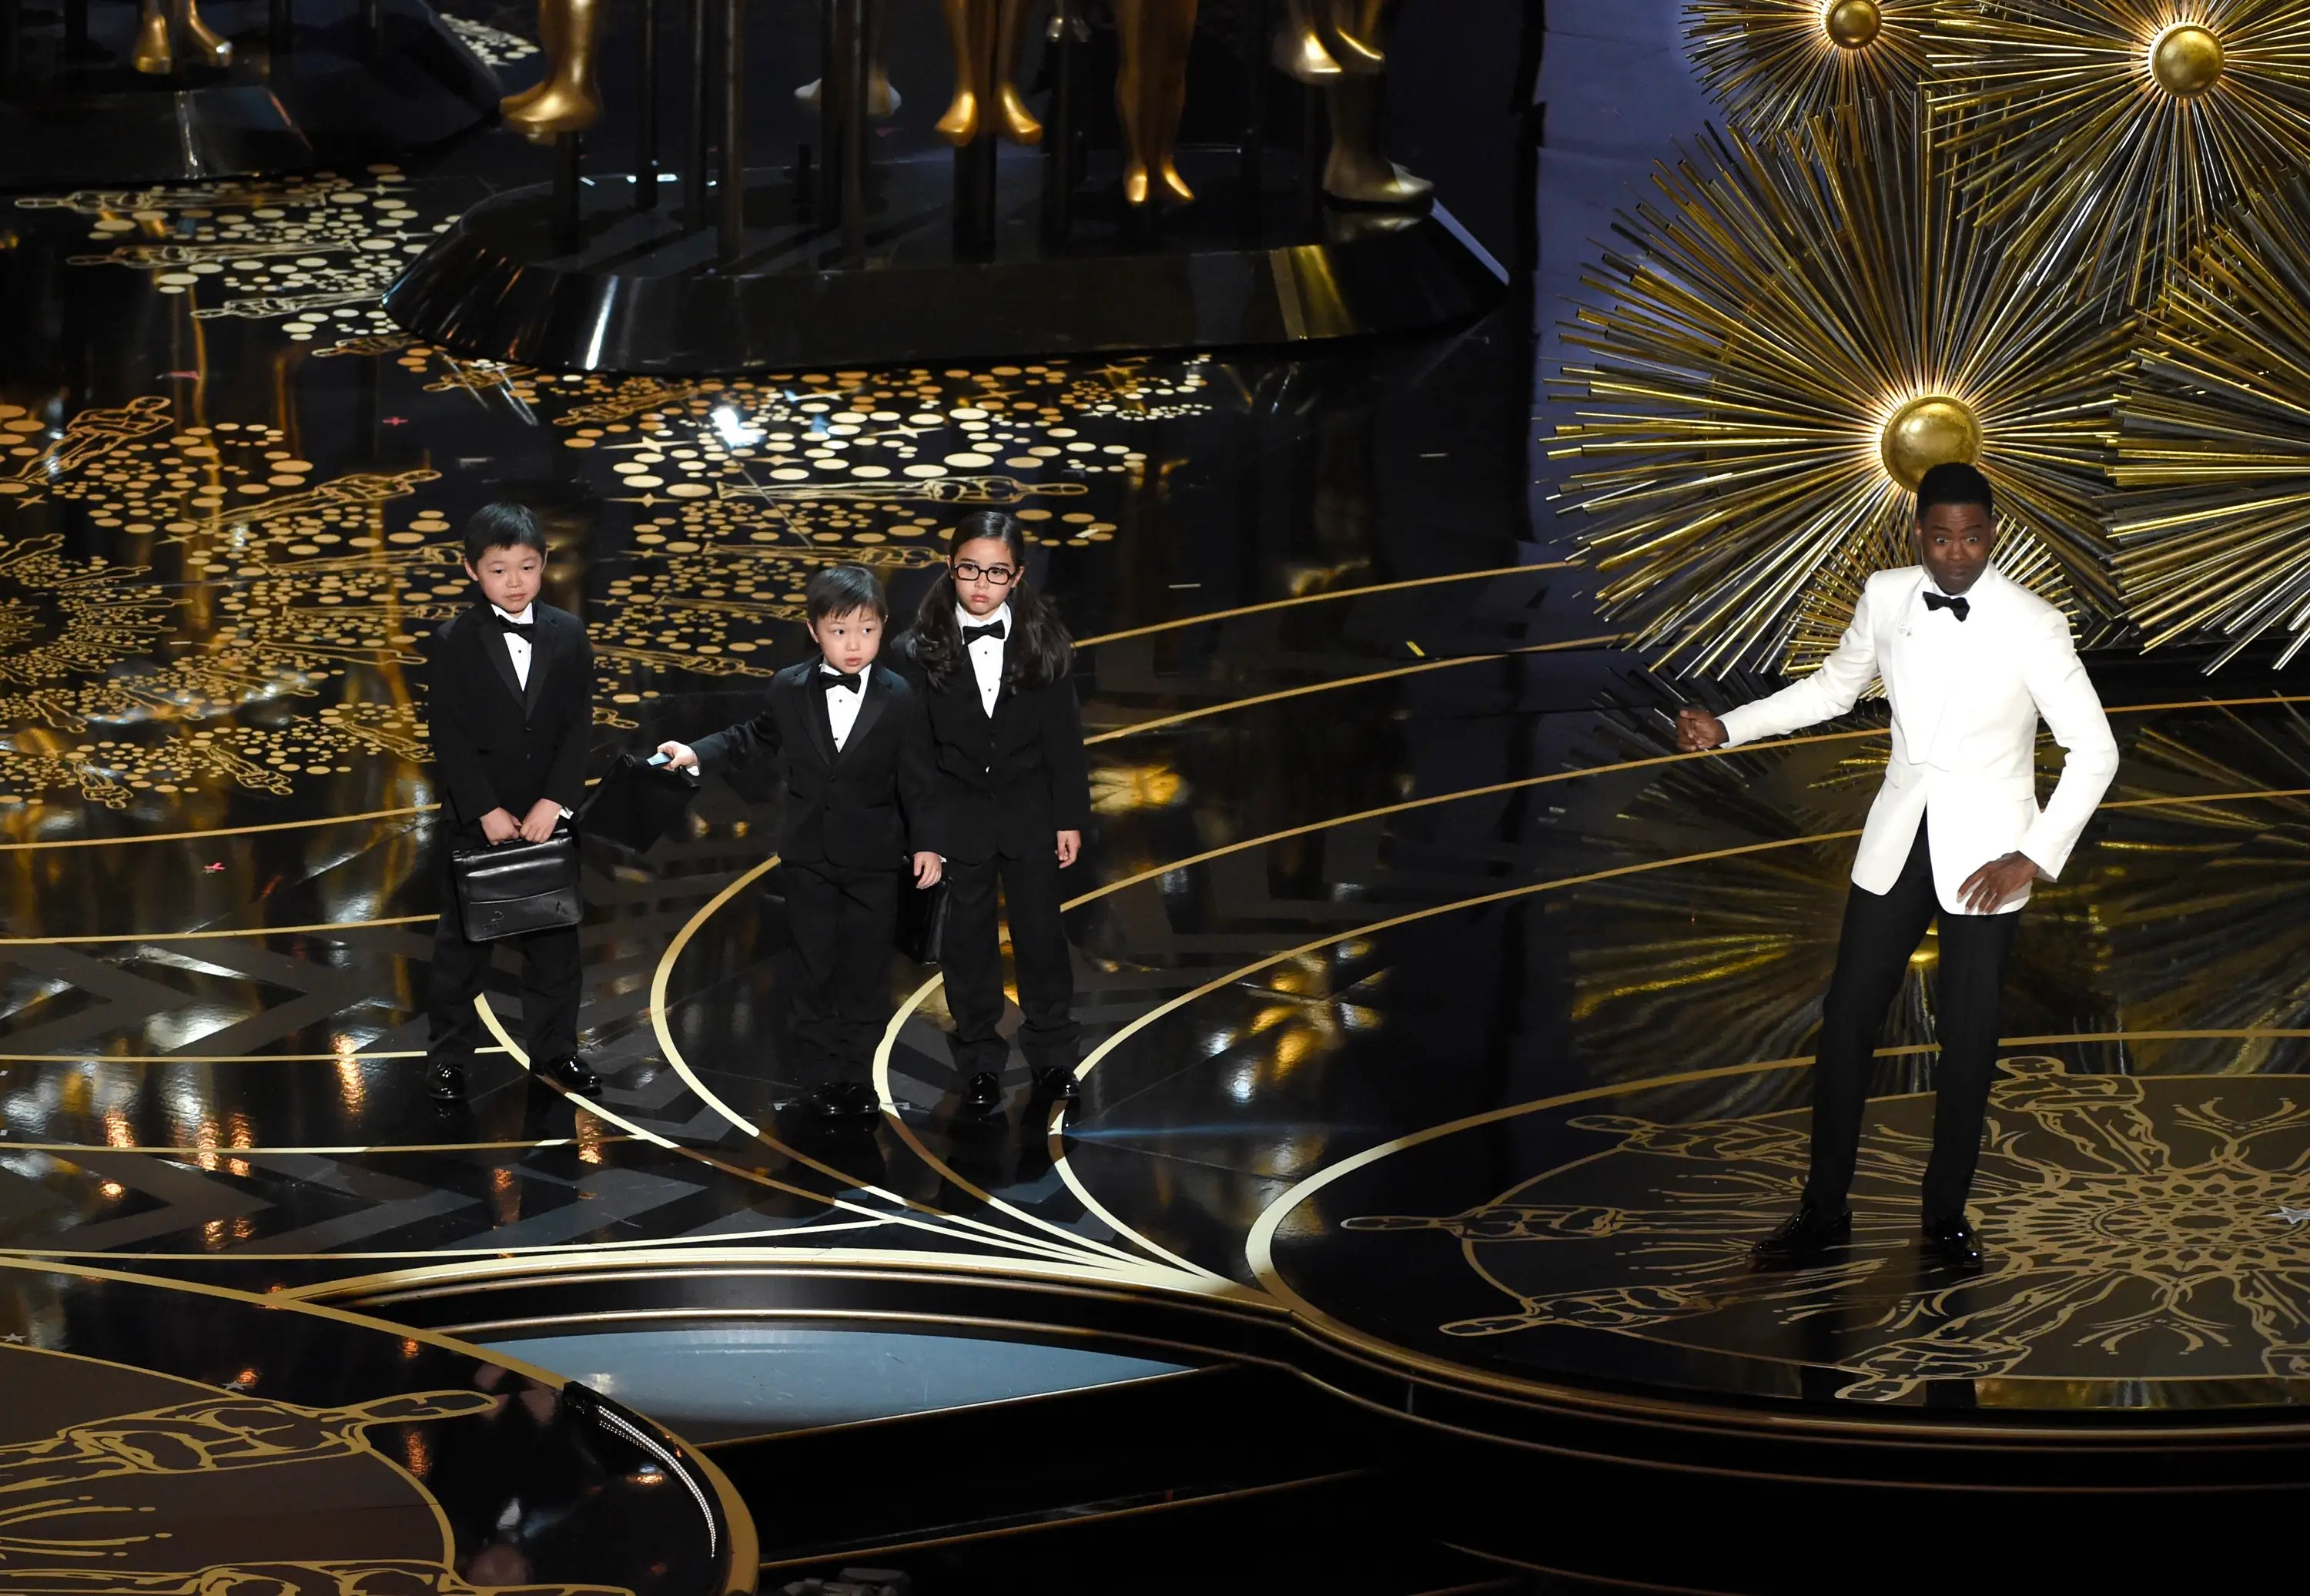 WORST: Chris Rock's low point of the night was when he tried to pull off this bit bringing out Asian children when introducing the accountants who tally the Oscar votes.